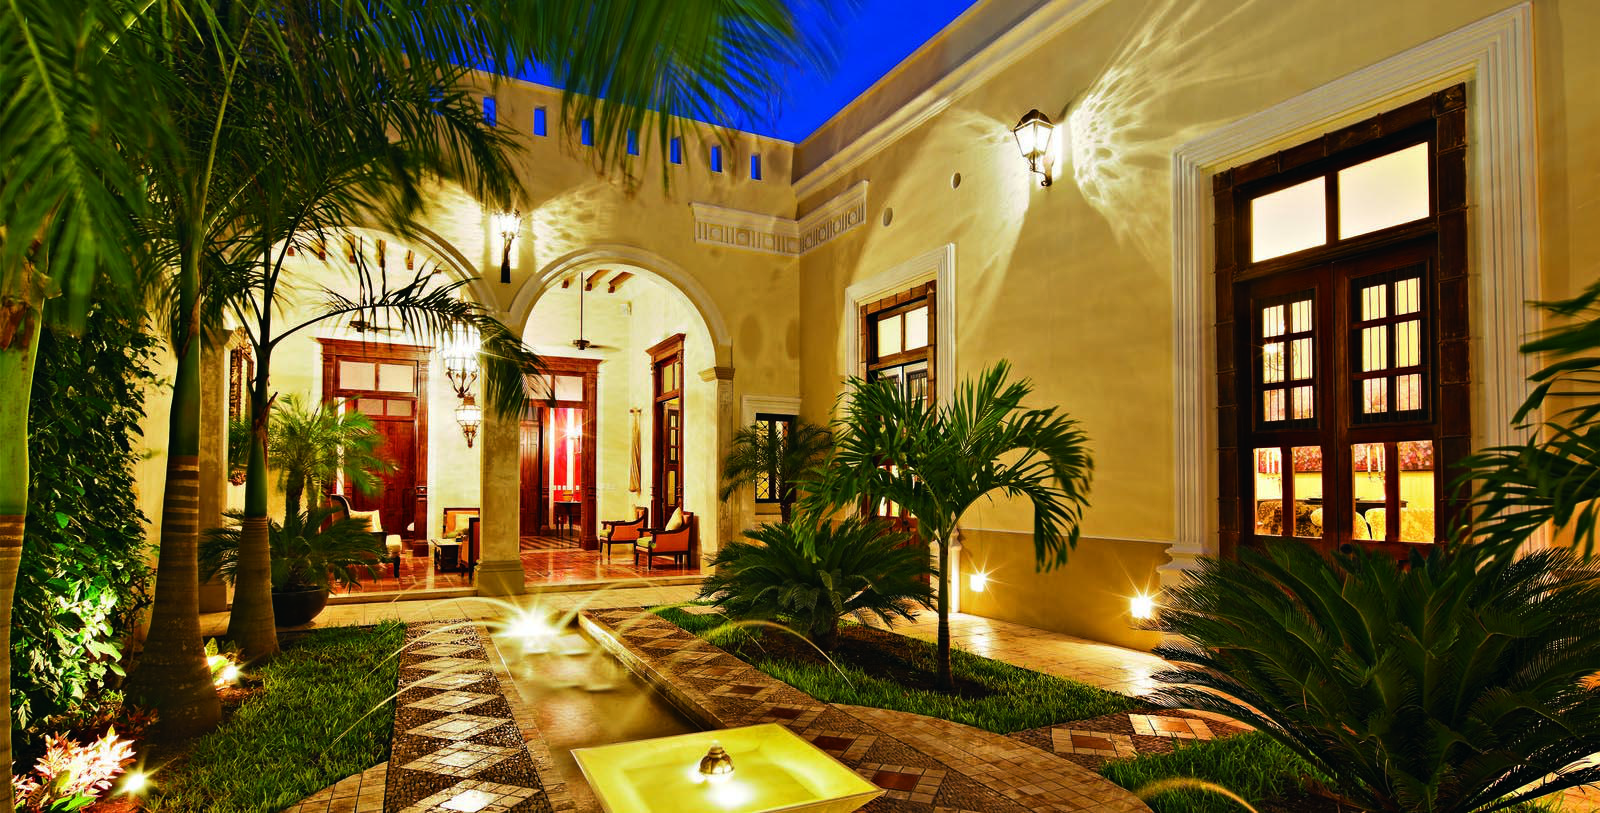 Image of outdoor courtyard Casa Lecanda, 1900s, Member of Historic Hotels Worldwide, in Merida, Mexico, Experience